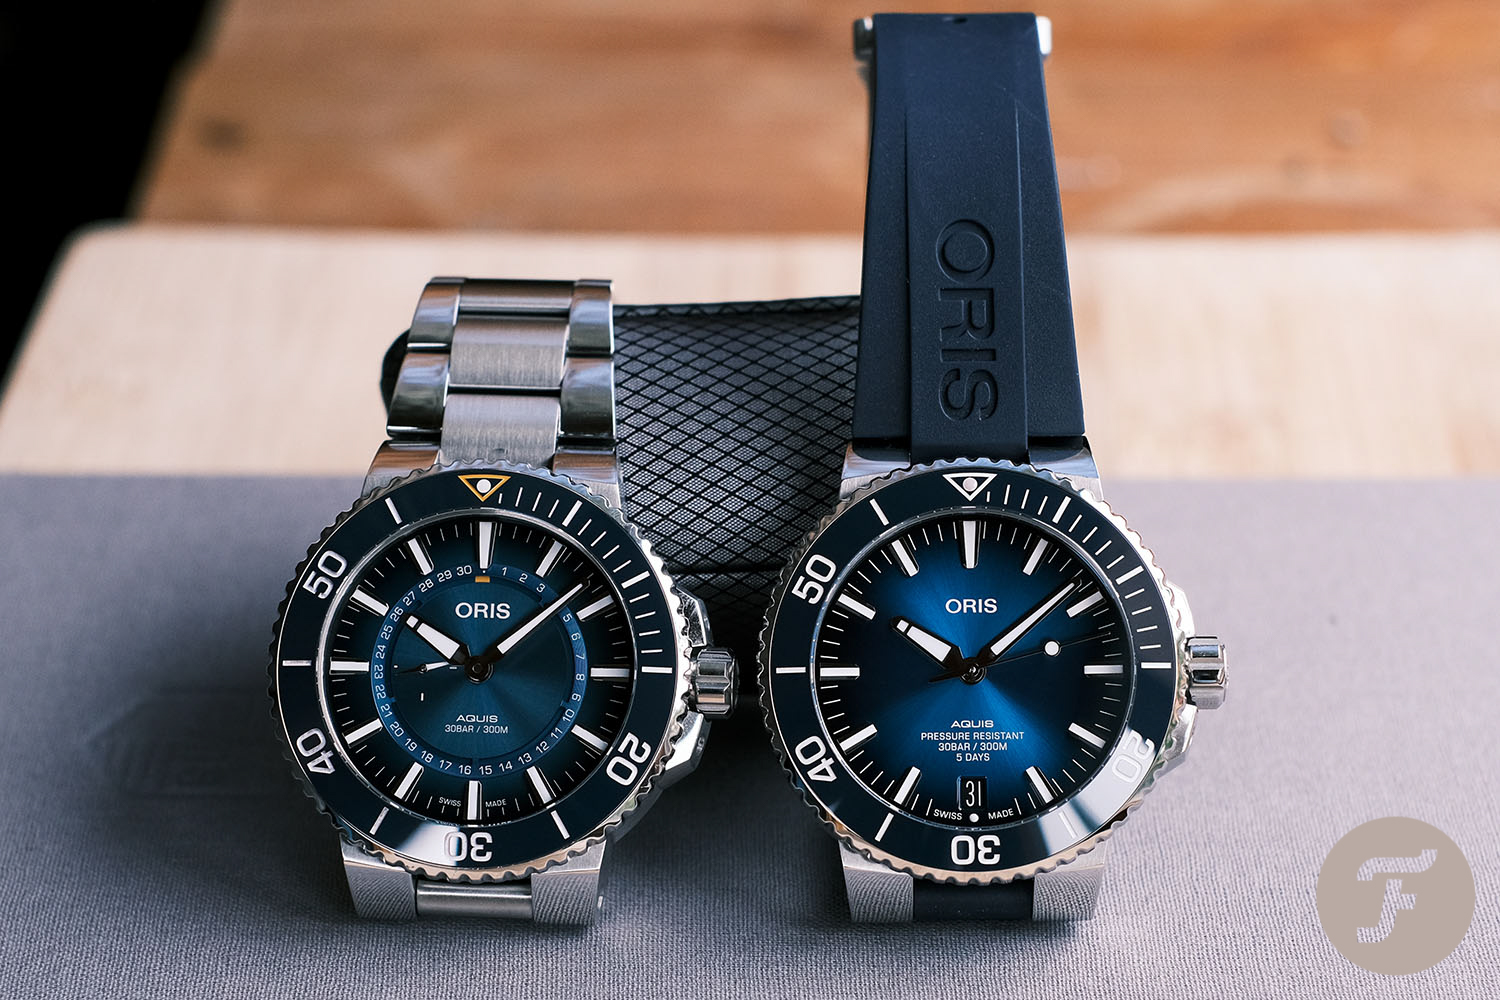 Opinion On The New Calibre 400 From An Oris Aquis Owner